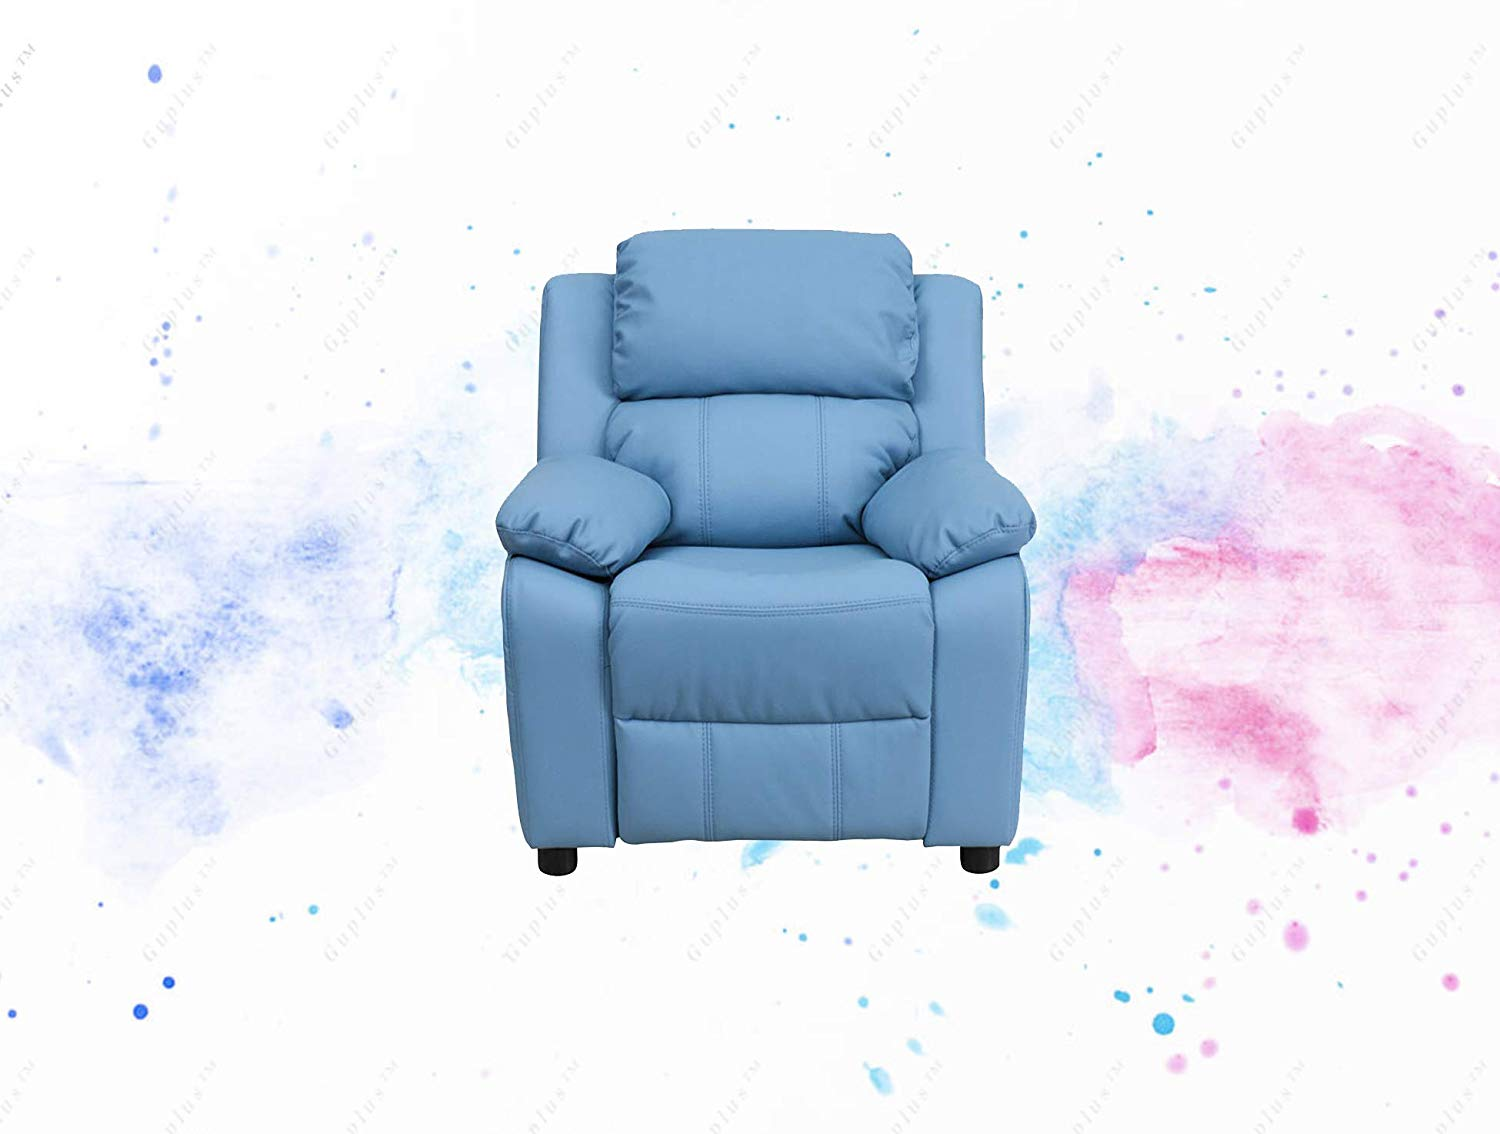 Light Blue Vinyl Kids Recliner with Storage Arms Child Sized Recliner Plush Padding for Extra Comfort Additional Headrest